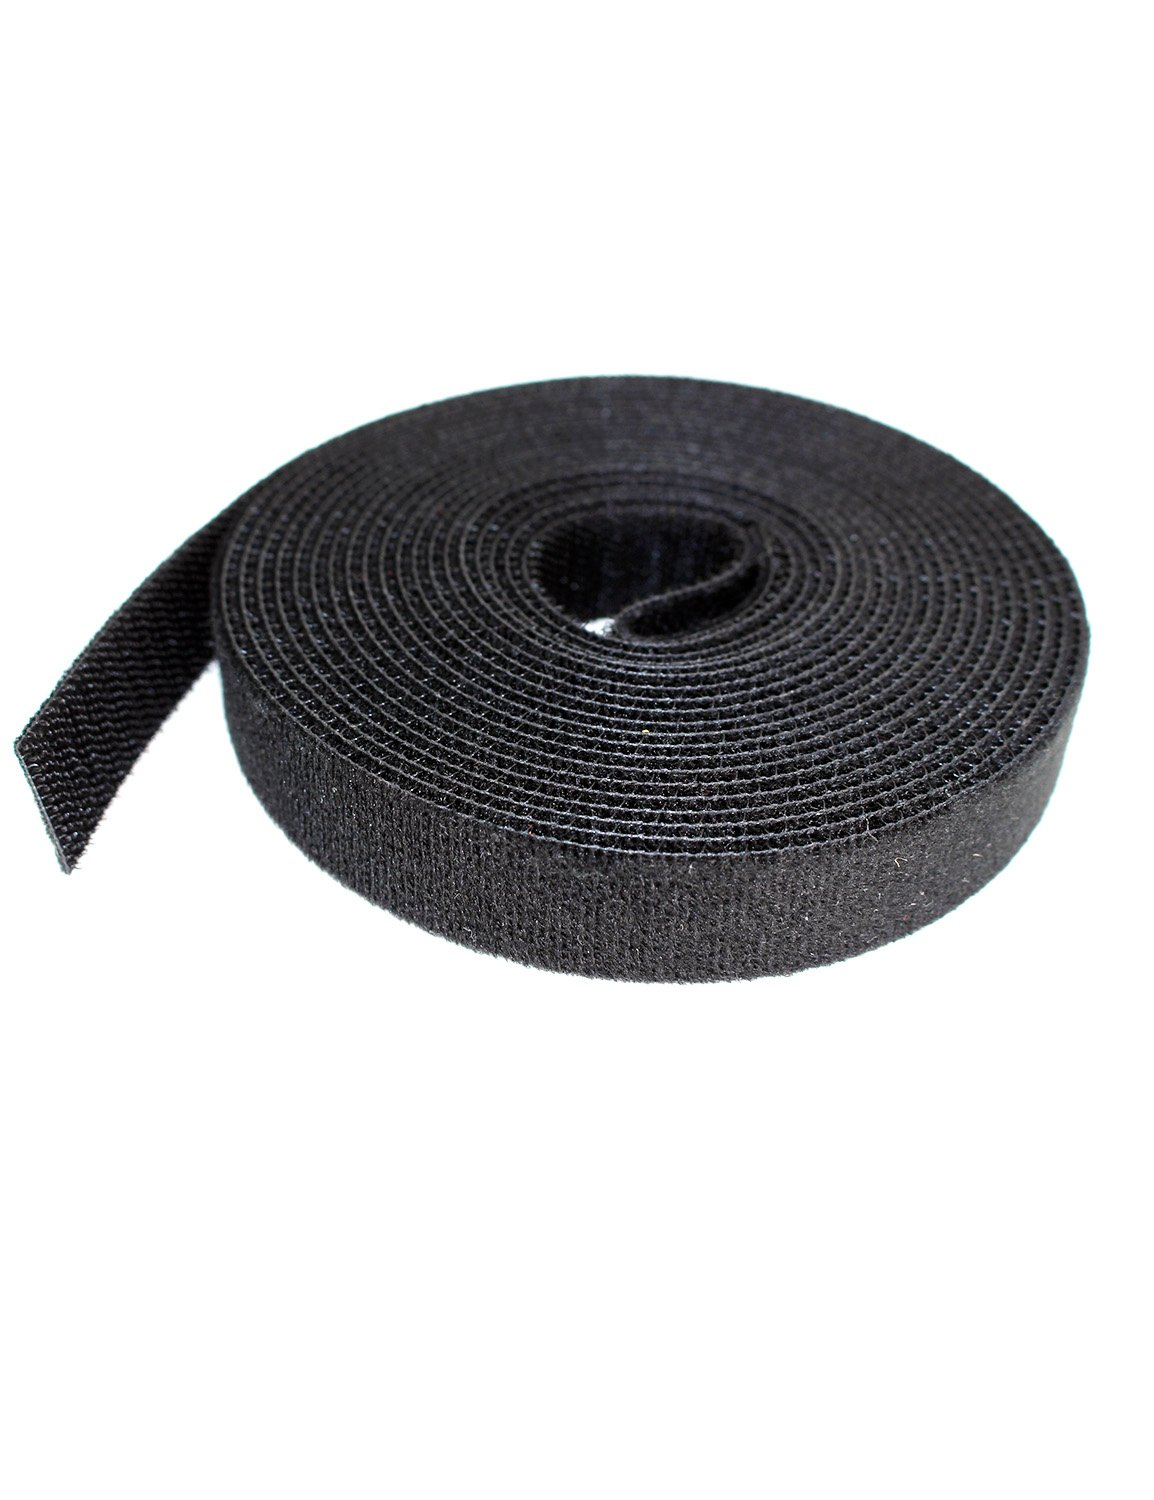 Aiposen Cable Ties 3 4 Inch x 5 Yards Reusable black Cable straps